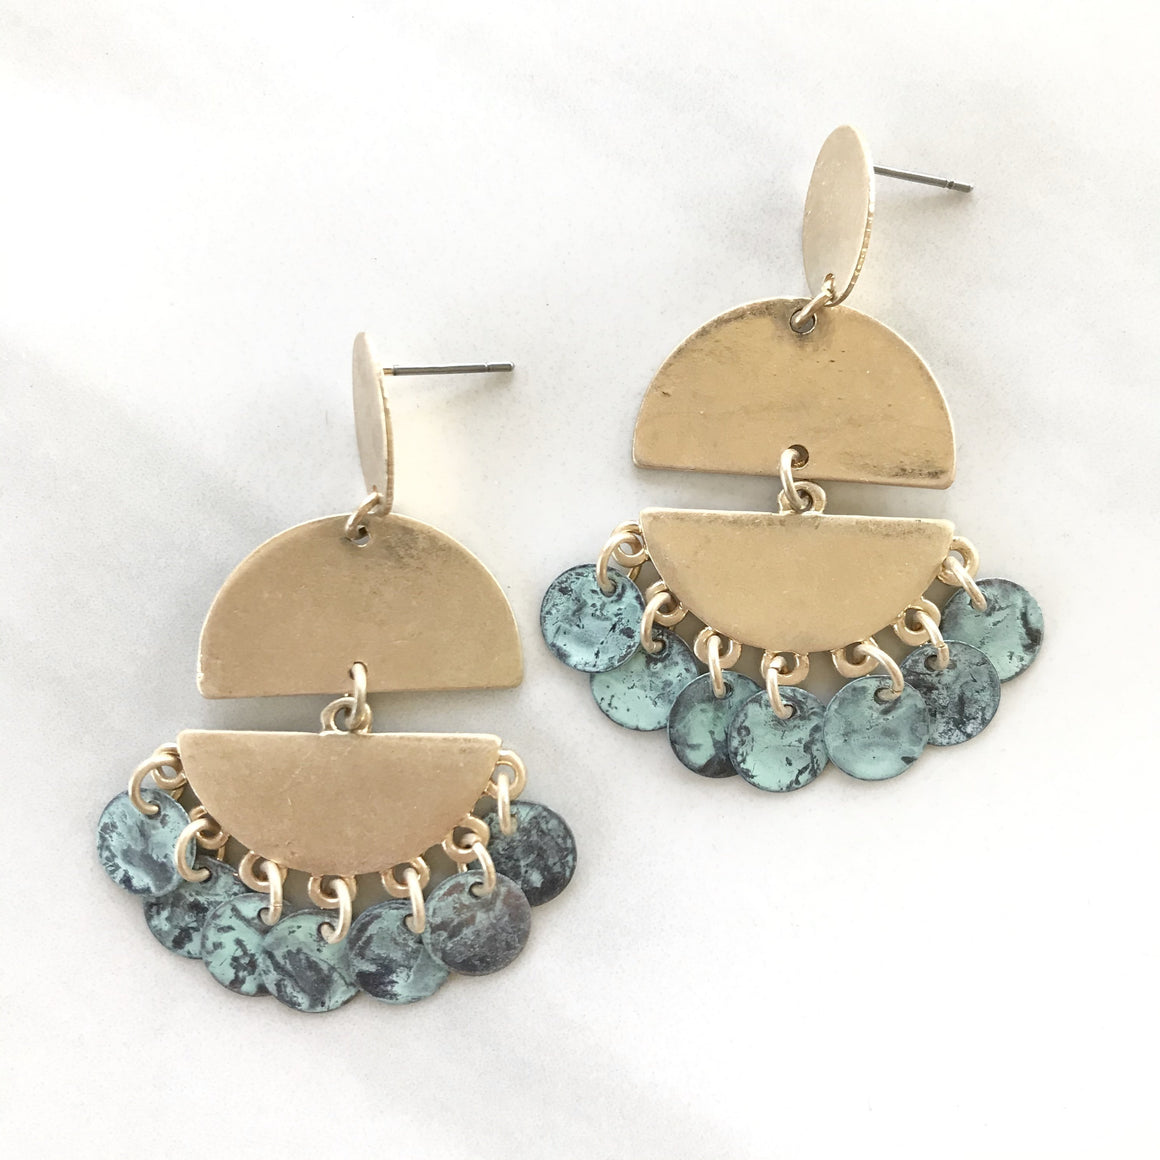 Never Enough Turquoise Earrings - Dainty Hooligan